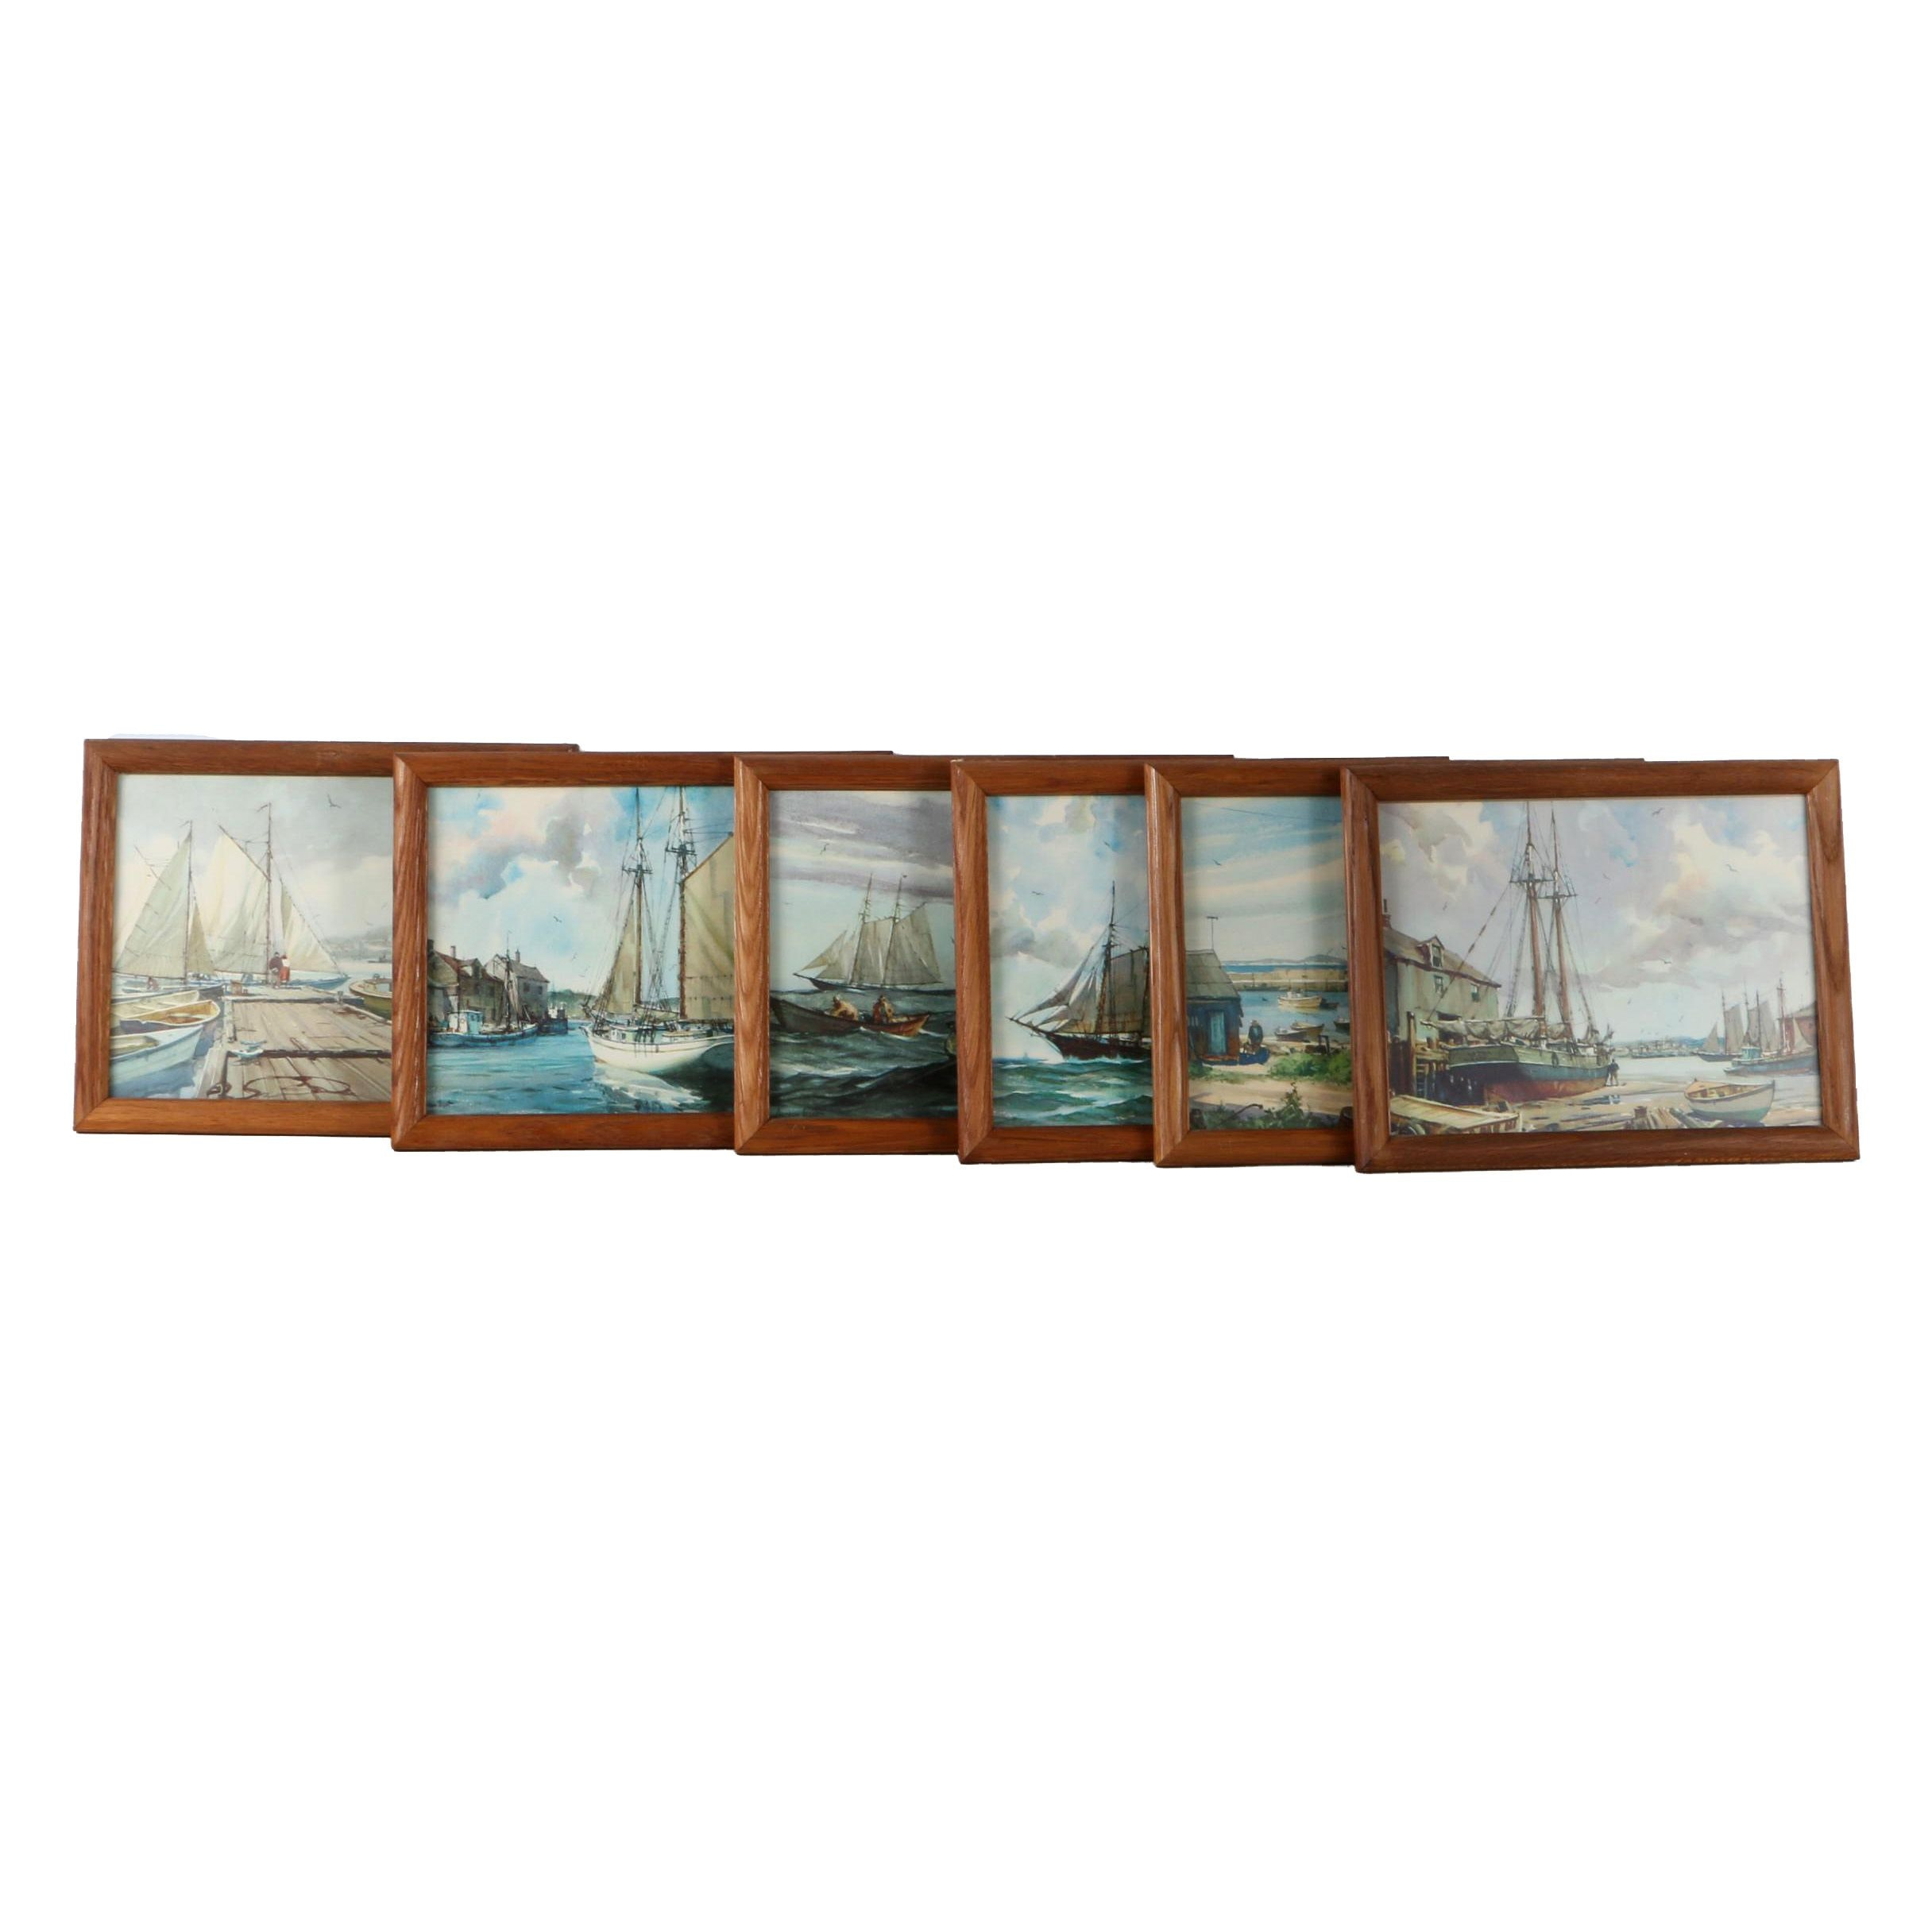 Offset Lithographs After Gordon Grant of Maritime Scenes